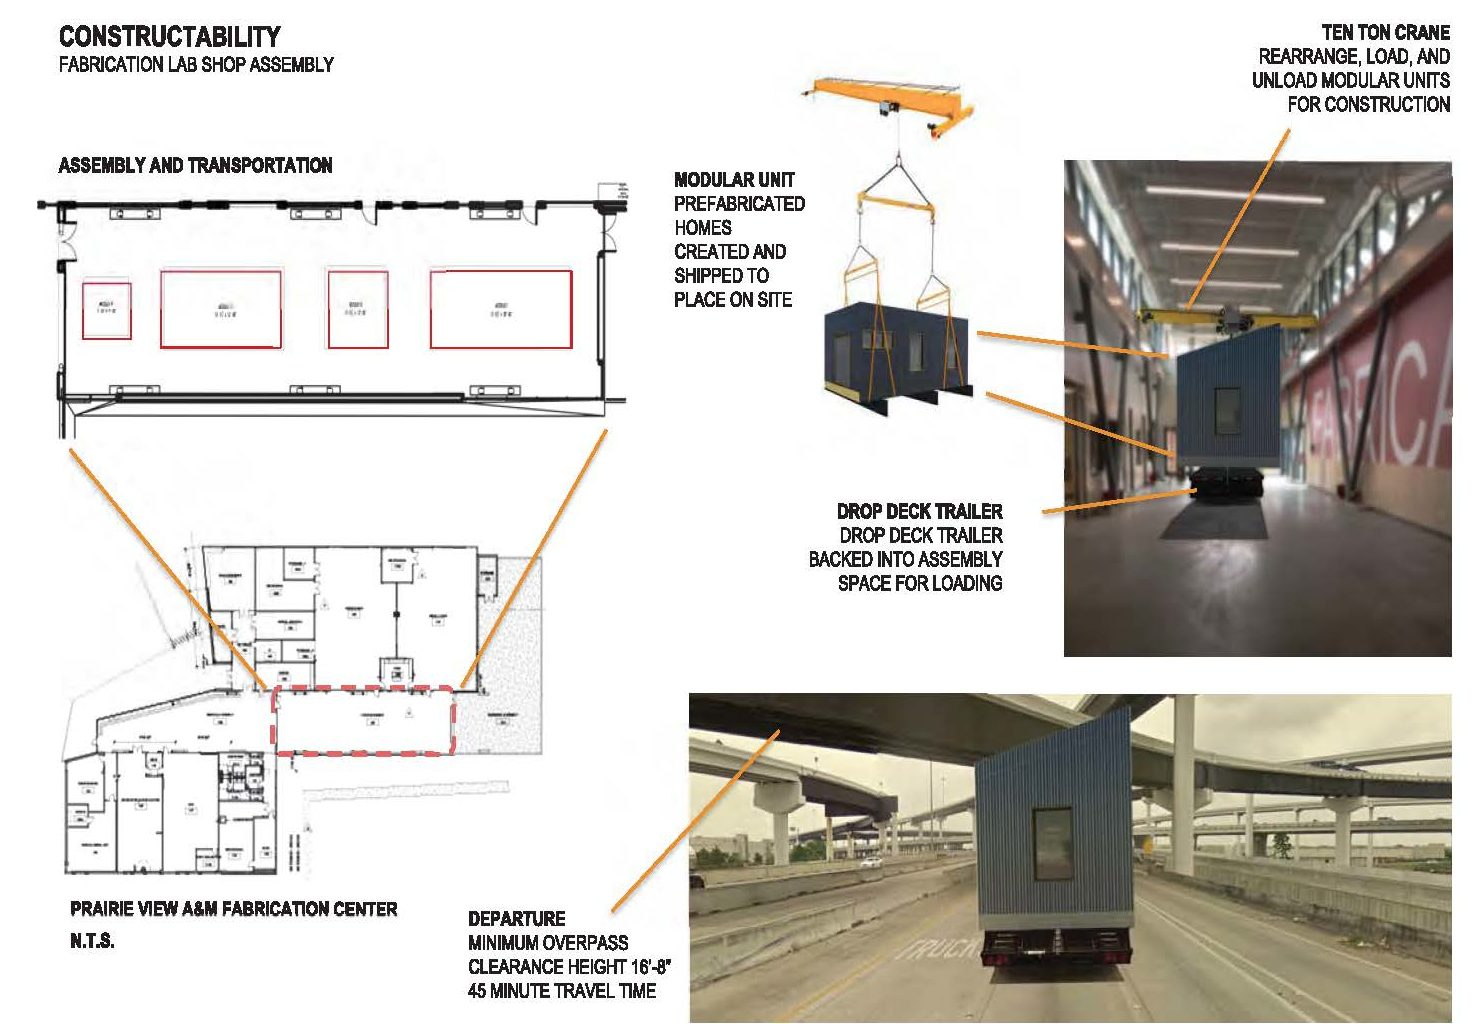 Plete The Munity Housing And Urban Design Petition Winners. Prefabrication Strategy From Winning Entry By The Pvamu Team. Wiring. Thomas Mobile Homes Construction Diagrams At Scoala.co